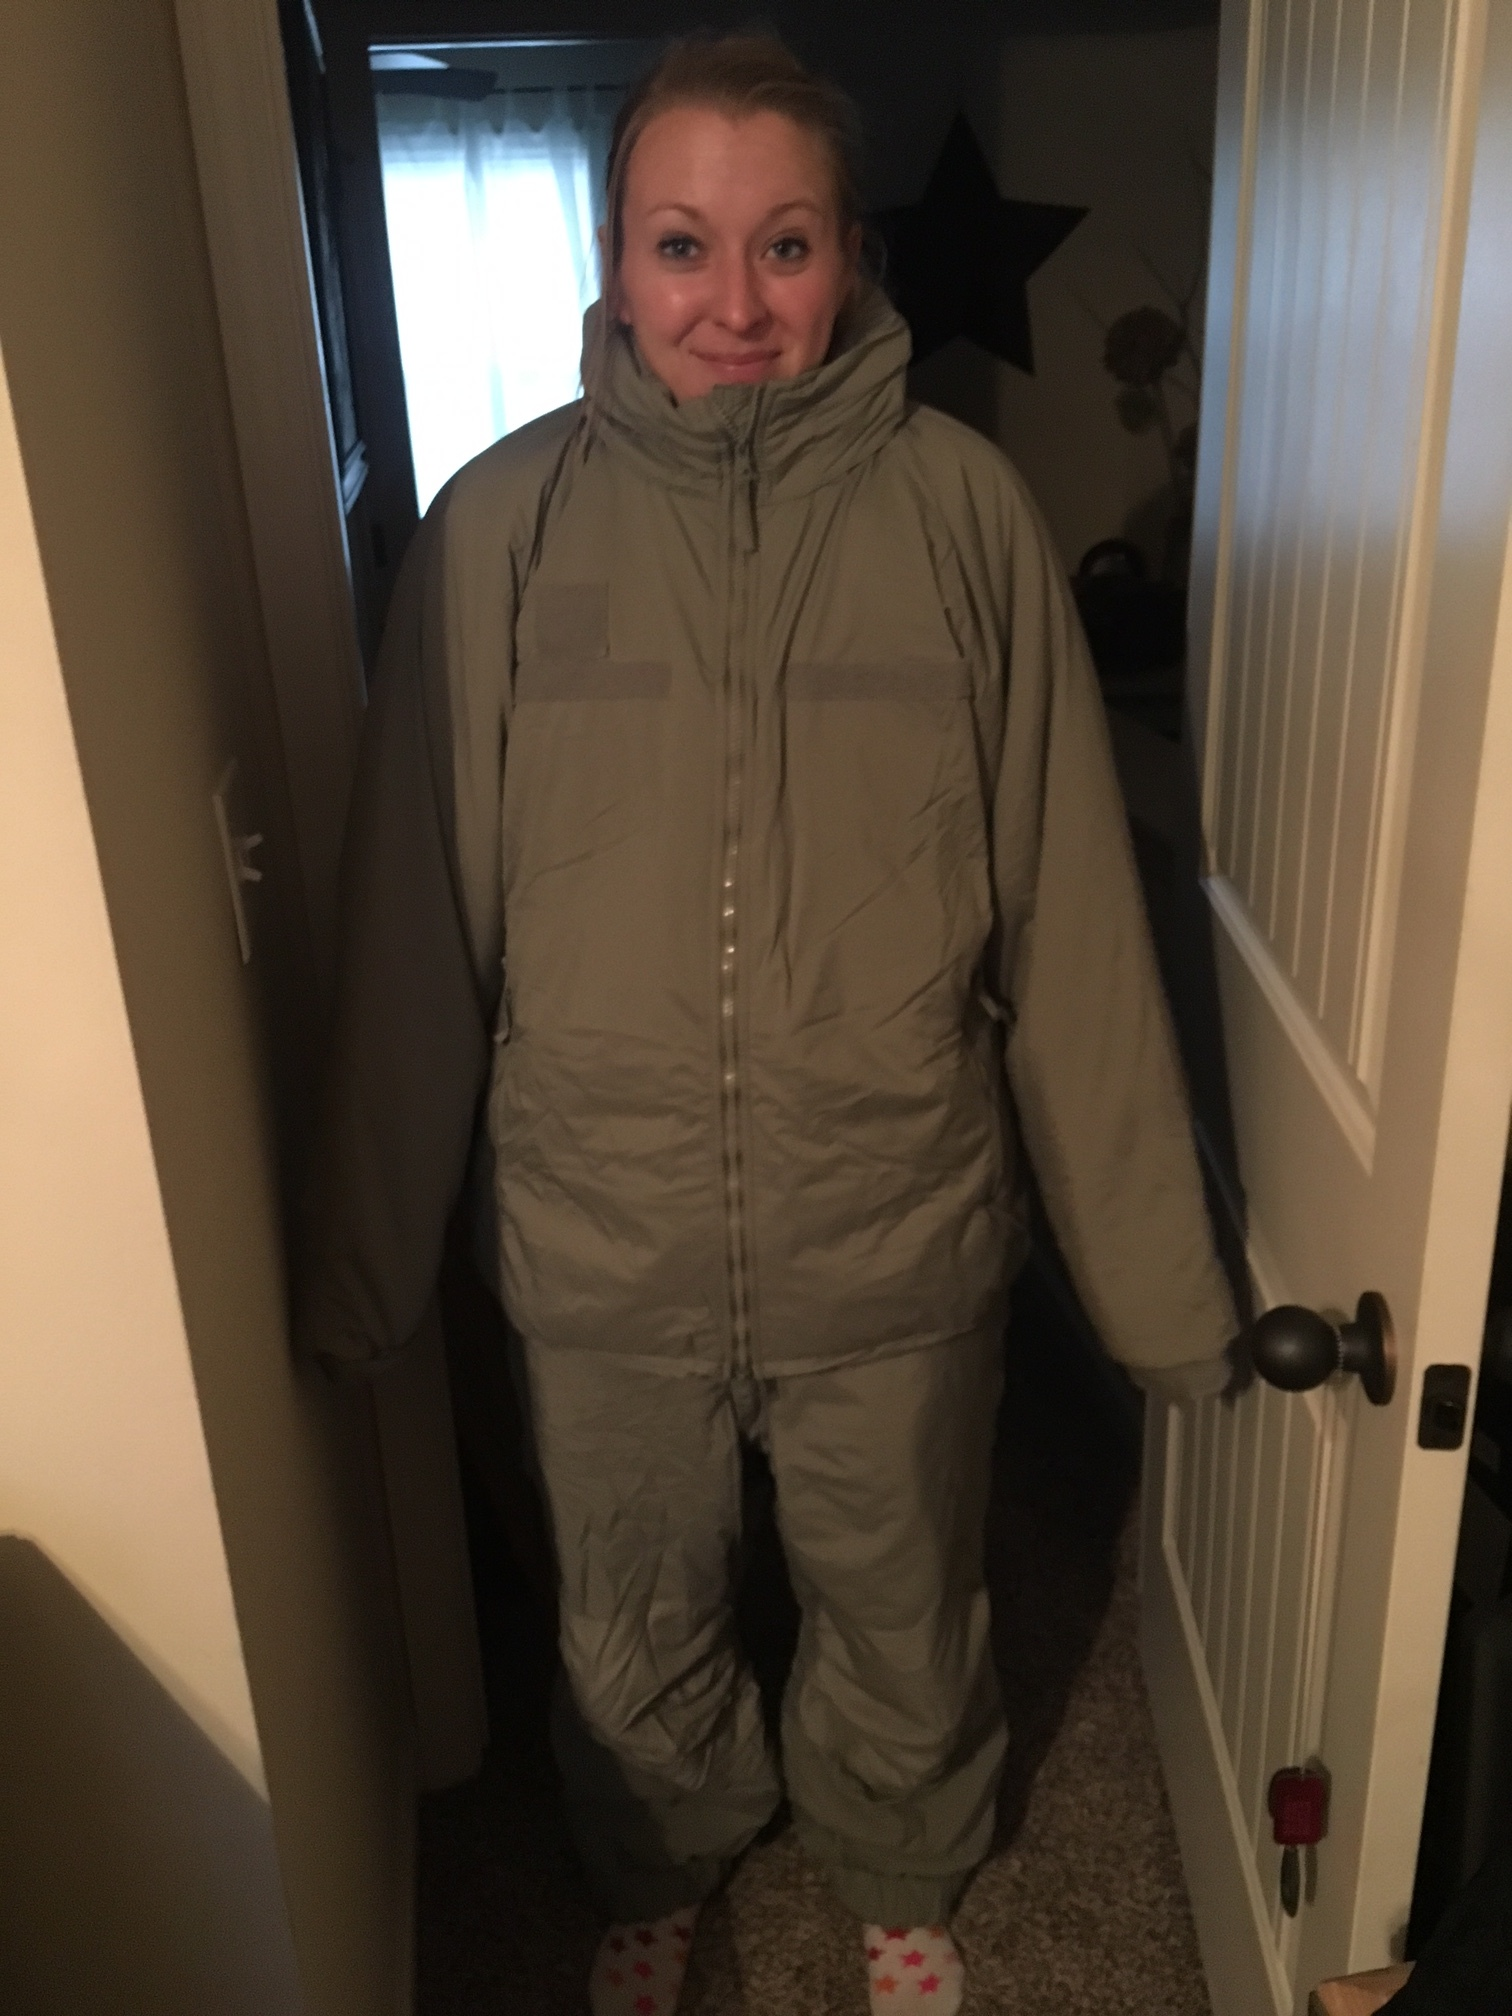 This snow suit had to be found but has only been worn by me in this photo.